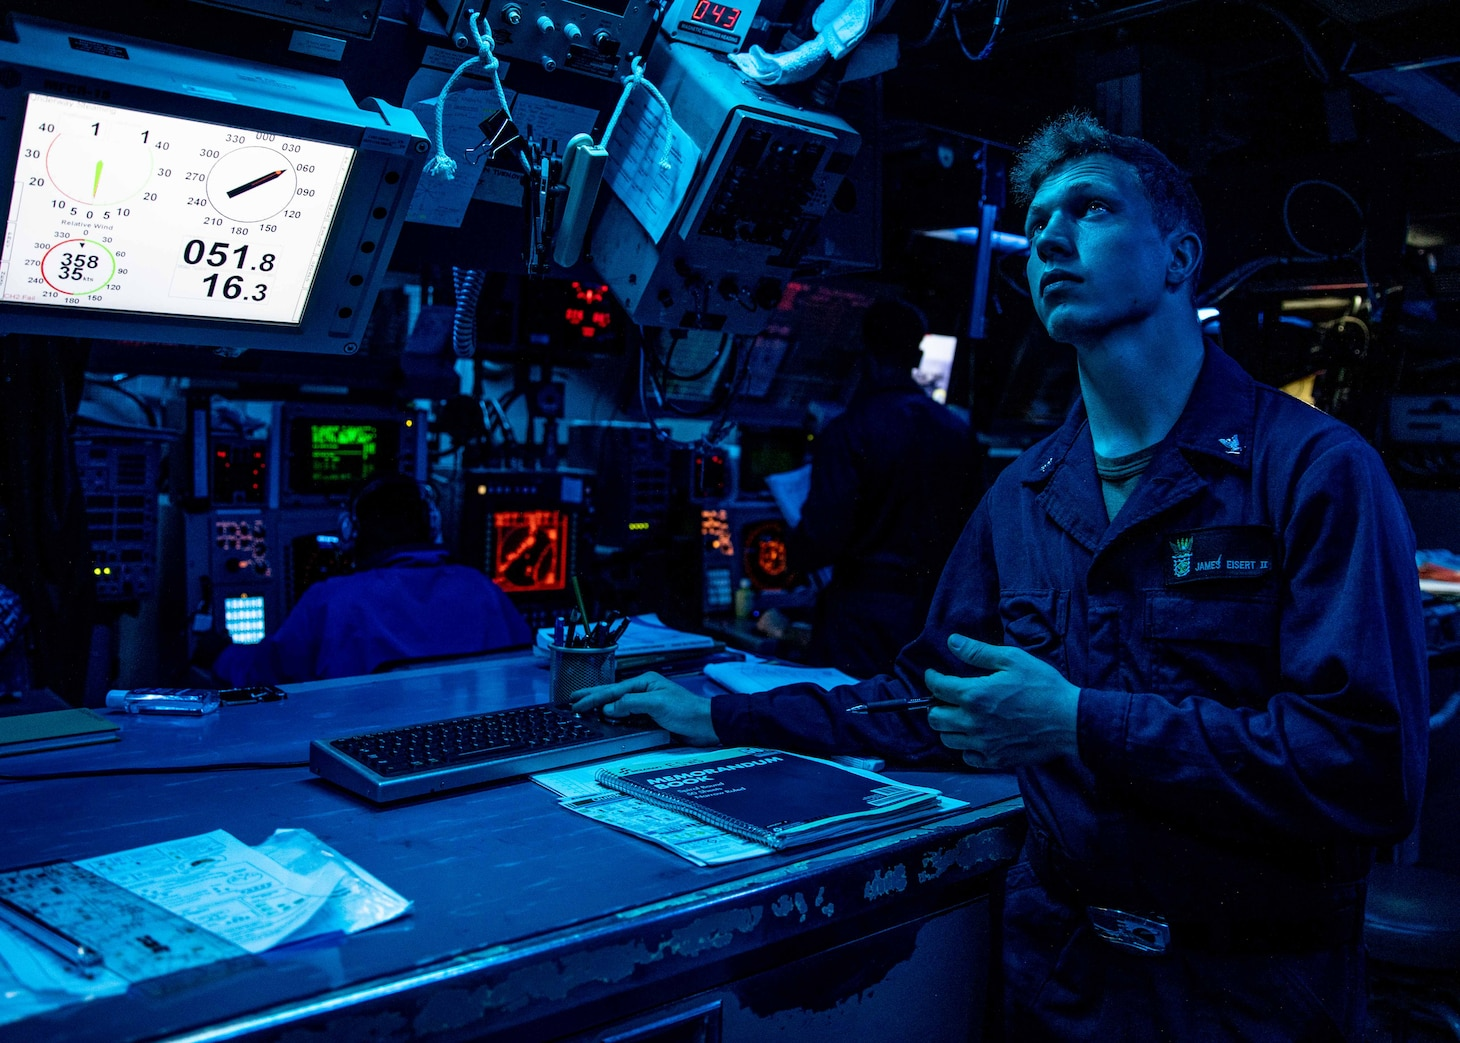 TAIWAN STRAIT (June 22, 2021) – Fire Controlman (Aegis) 3rd Class James Eisert, from Philadelphia, stands watch in combat systems while Arleigh Burke-class guided-missile destroyer USS Curtis Wilbur (DDG 54) as the ship conducts routine operations. Curtis Wilbur is assigned to Commander, Task Force 71/Destroyer Squadron (DESRON) 15, the Navy's largest forward-deployed DESRON and U.S. 7th Fleet's principal surface force.